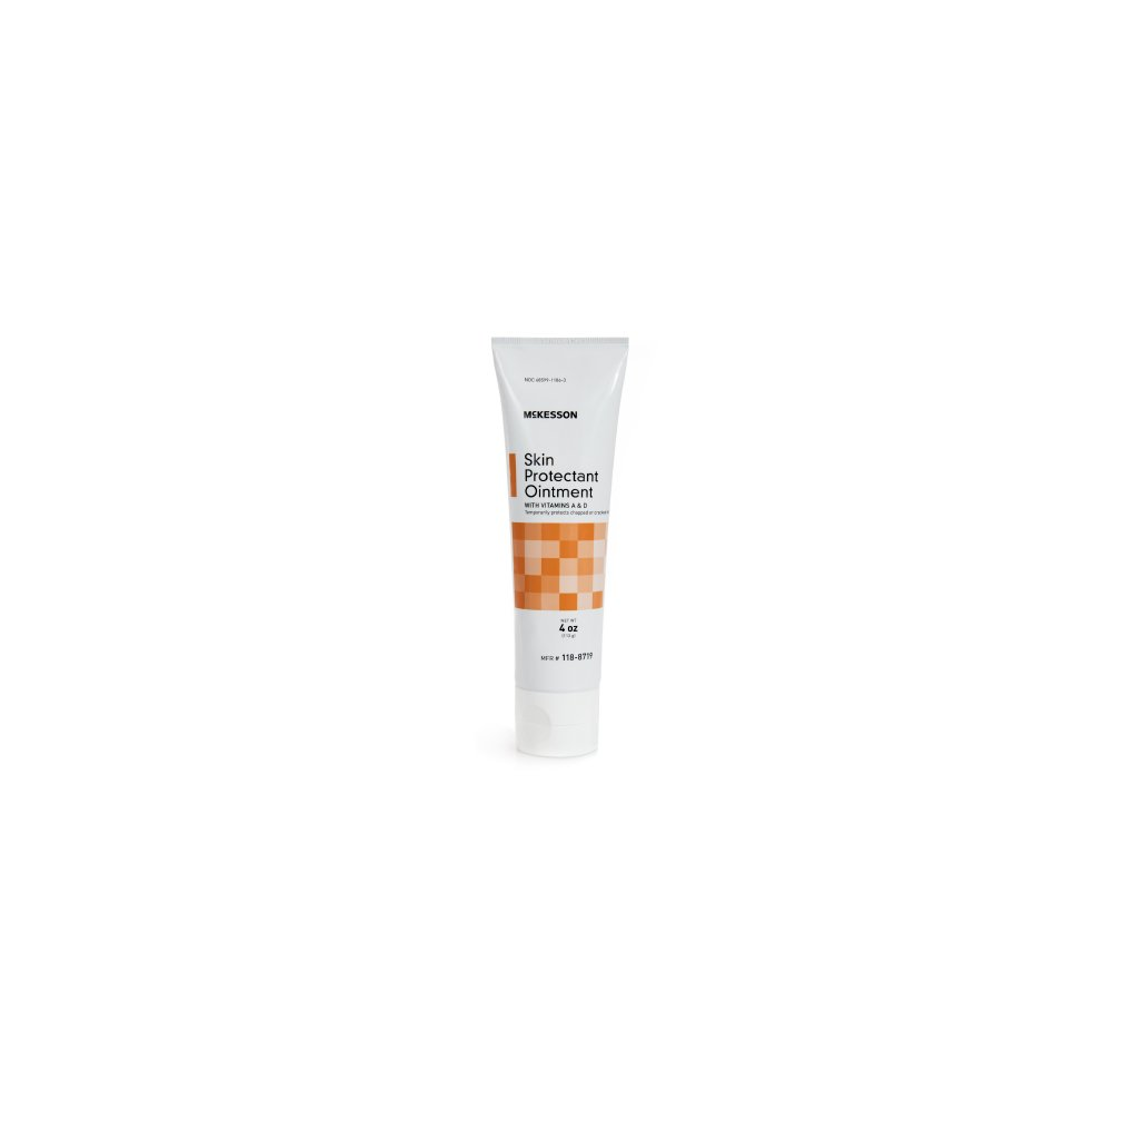 Skin Protectant McKesson 4 oz. Tube Unscented Ointment